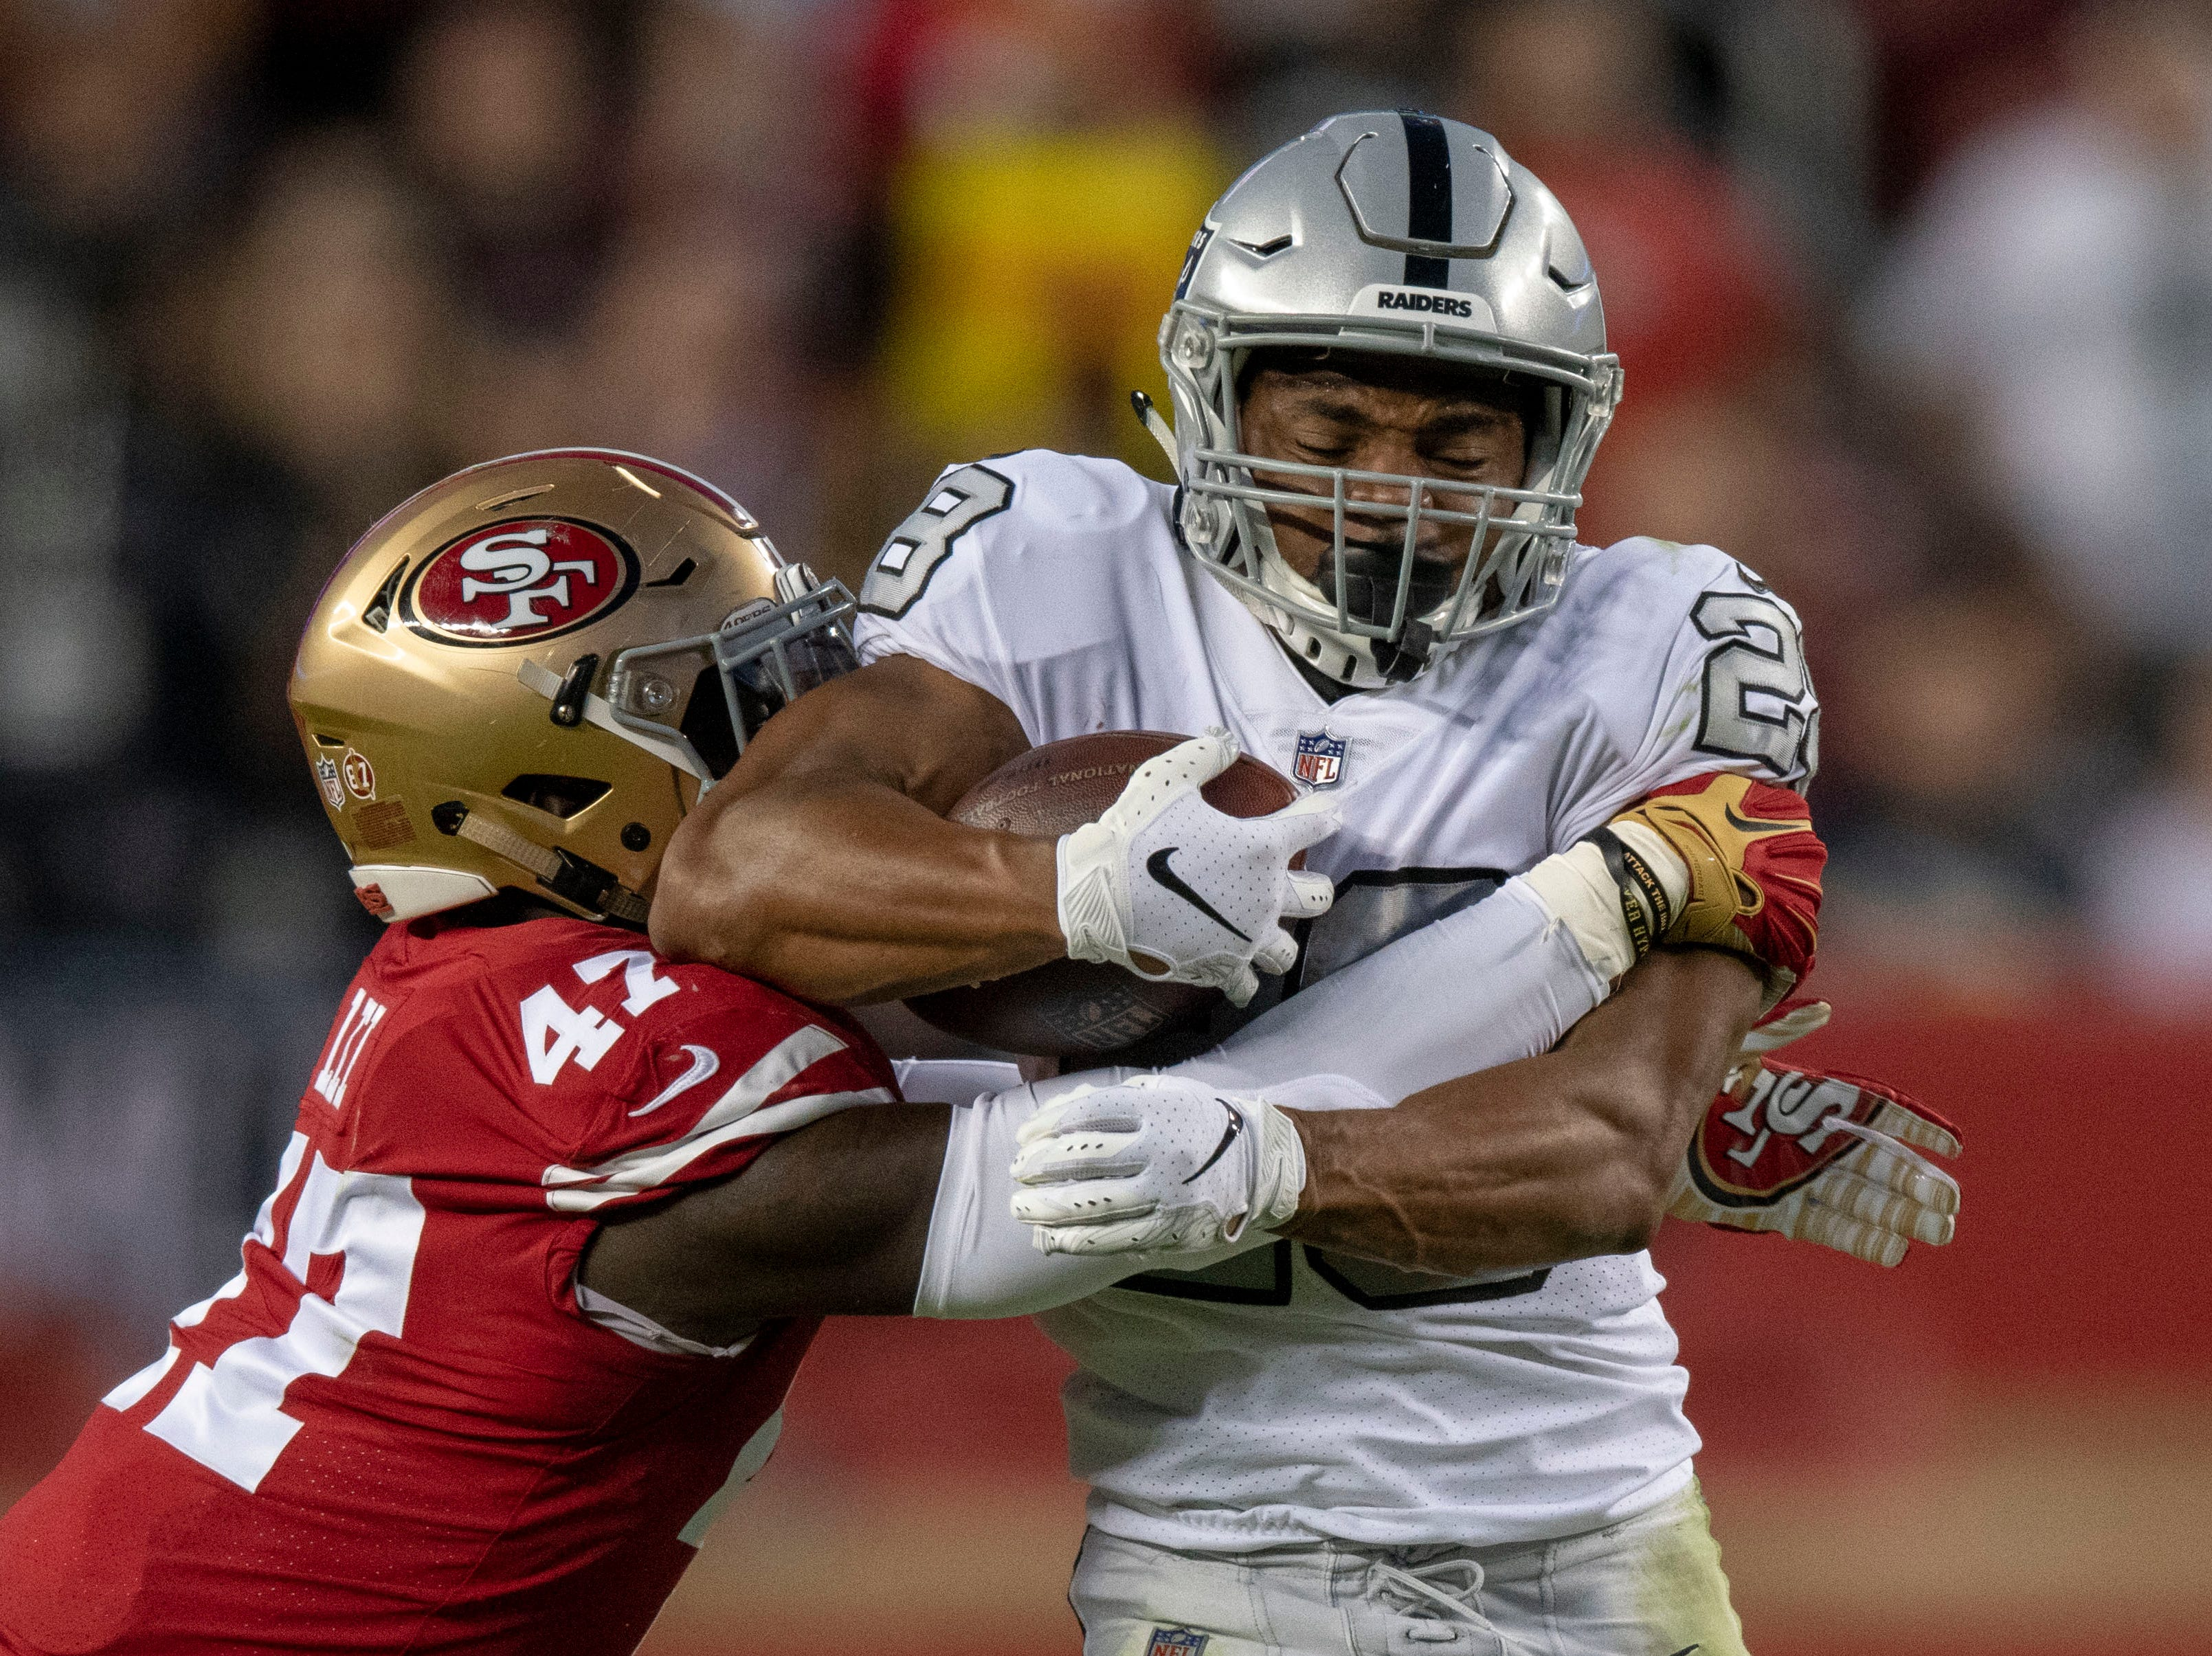 Oakland Raiders running back Doug Martin (28) is tackled by San Francisco 49ers outside linebacker Elijah Lee (47) during the second quarter at Levi's Stadium.